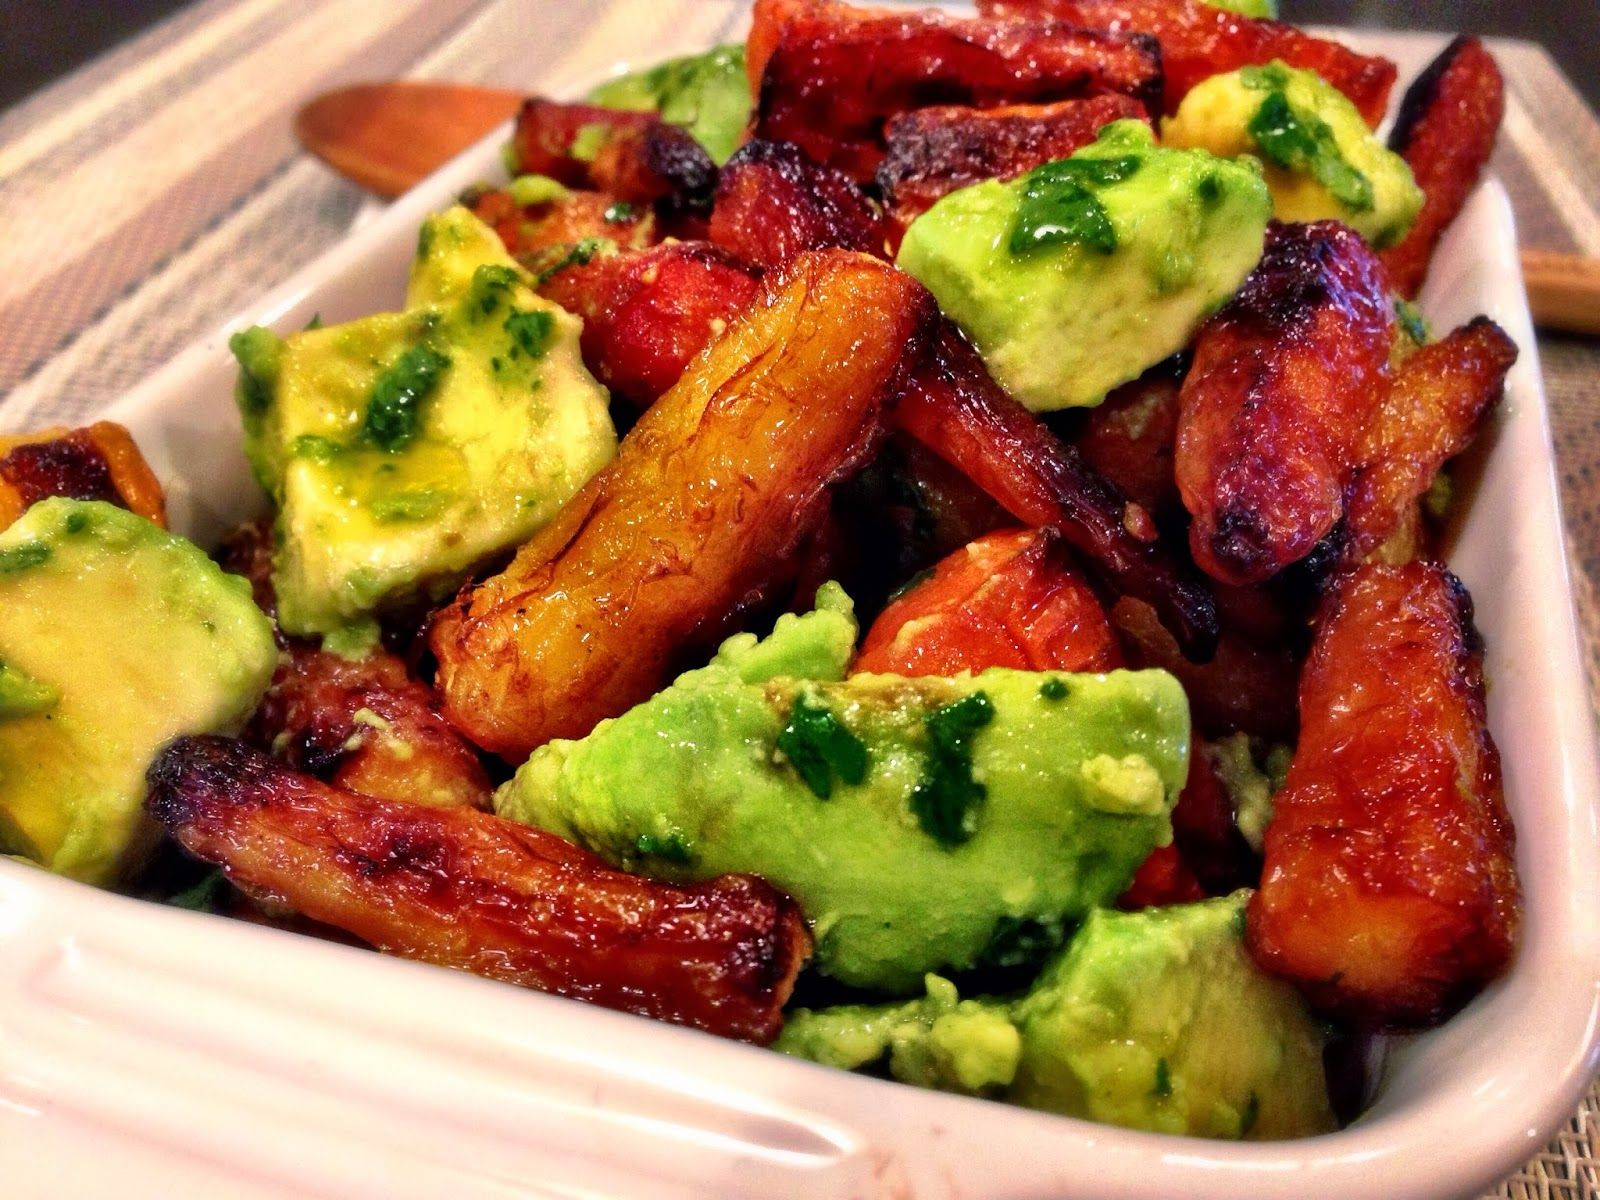 Roasted Rainbow Carrots and Avocado Salad with Cilantro Pesto Dressing - Kale With Love